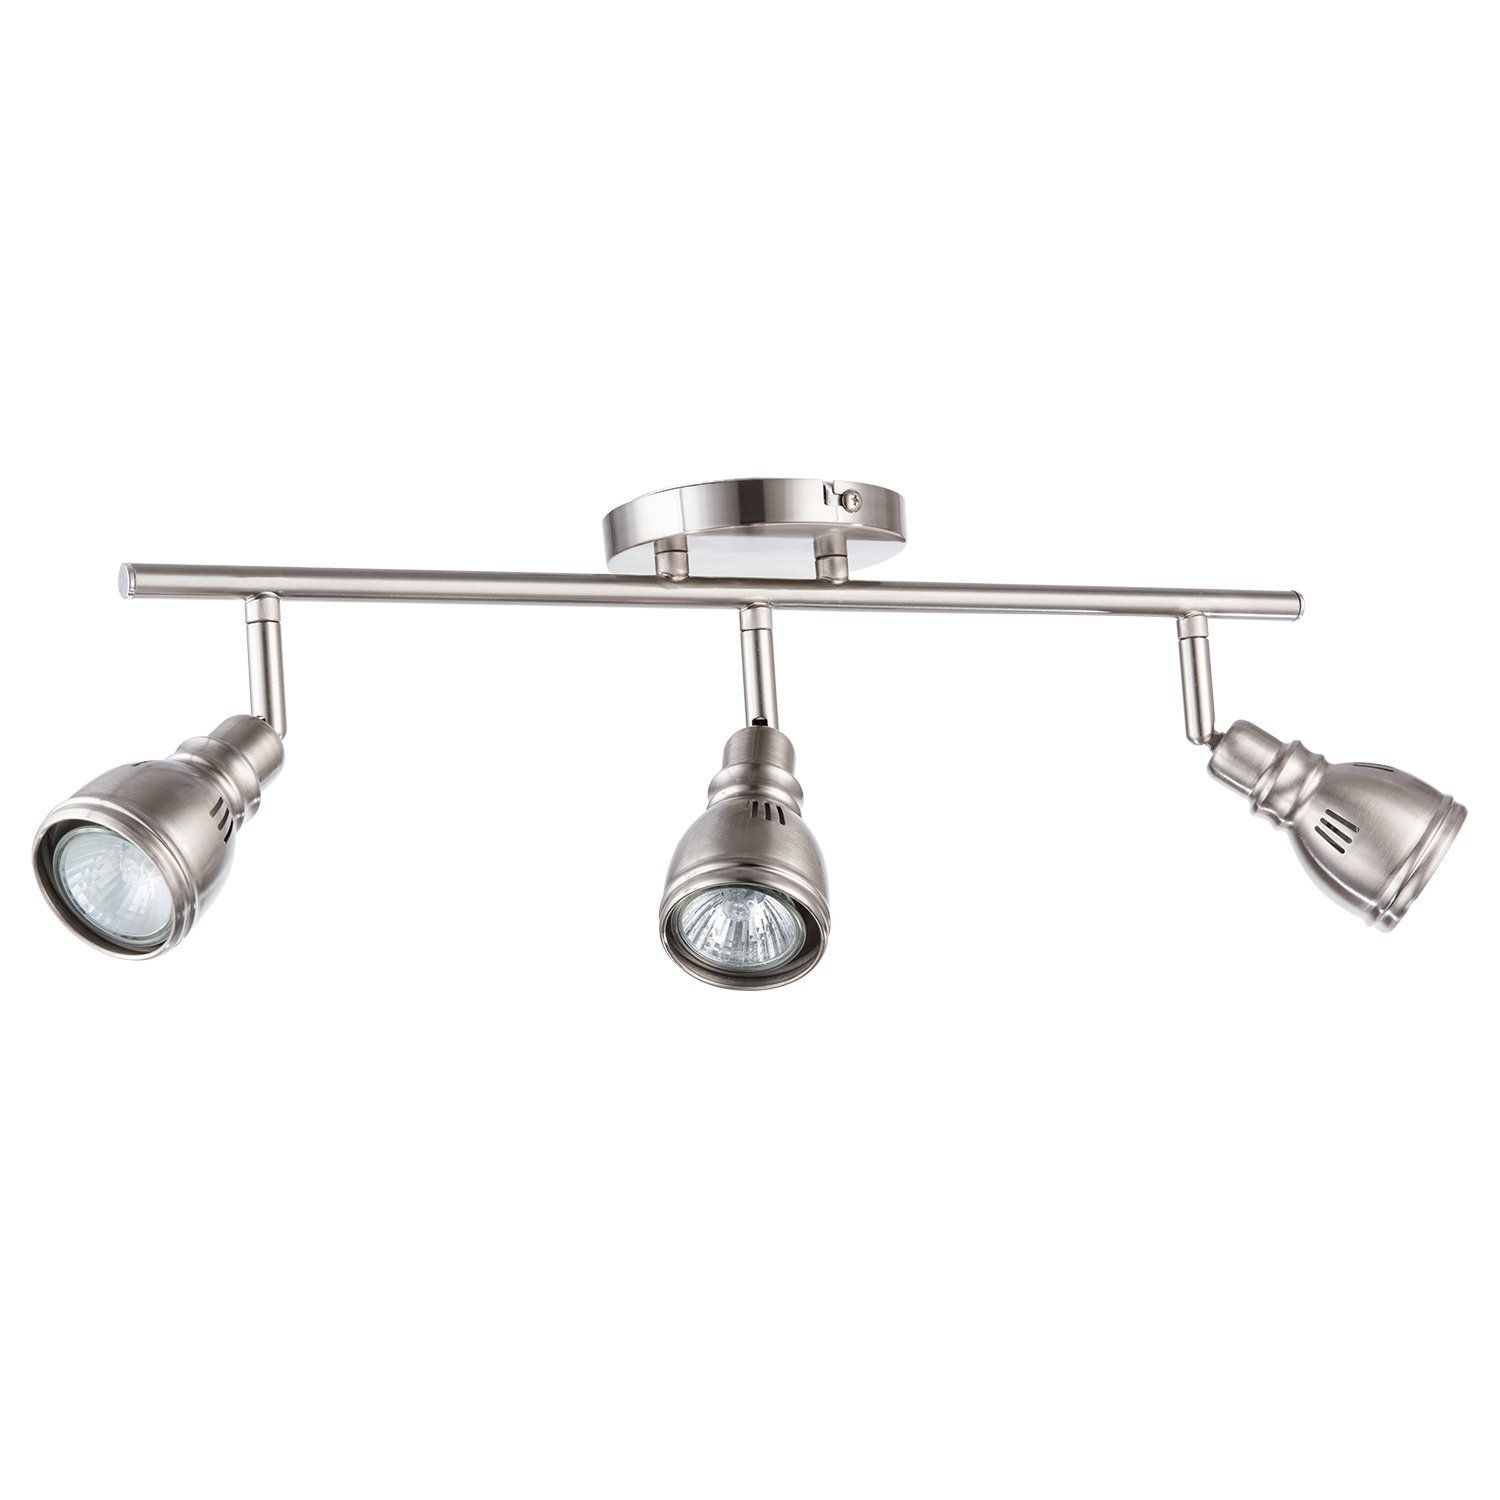 amazon track lighting. Merax 3 Light Track Lighting Wall Or Ceiling Fixture, Brushed Nickel. Adjustable Swivel Amazon R